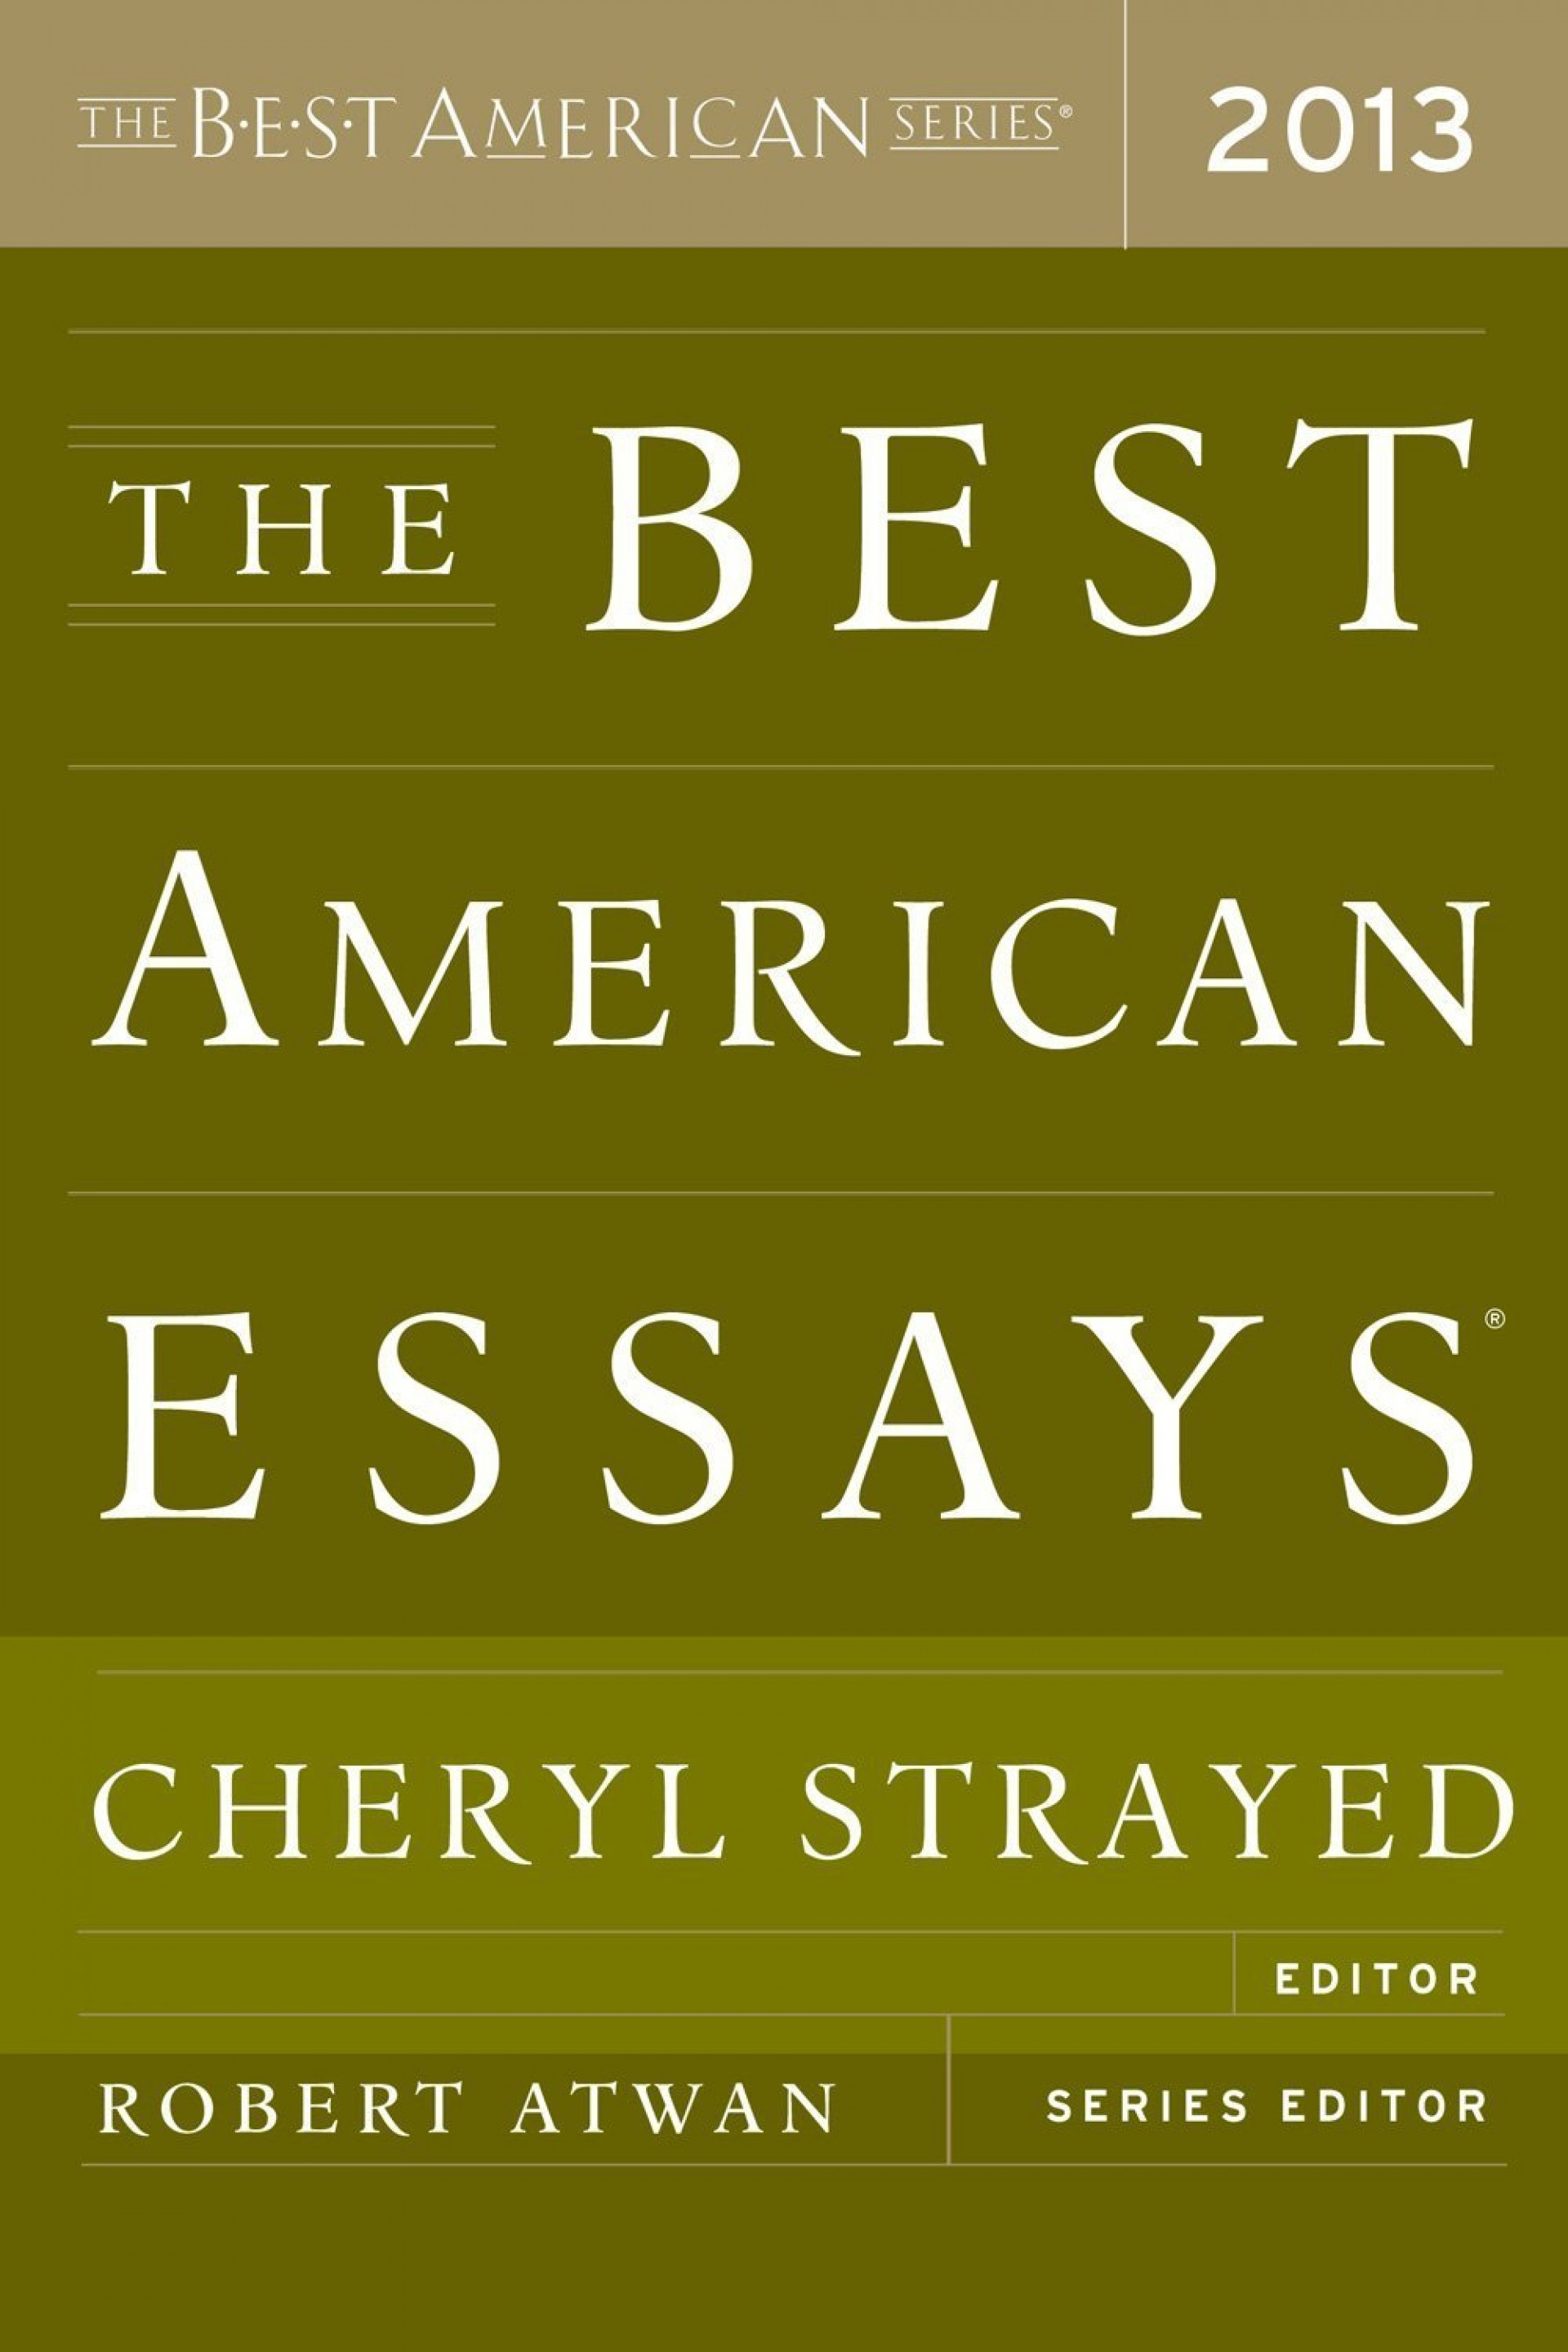 004 The Best American Essays Essay Wonderful 2018 Pdf 2017 Table Of Contents 2015 Free 1920